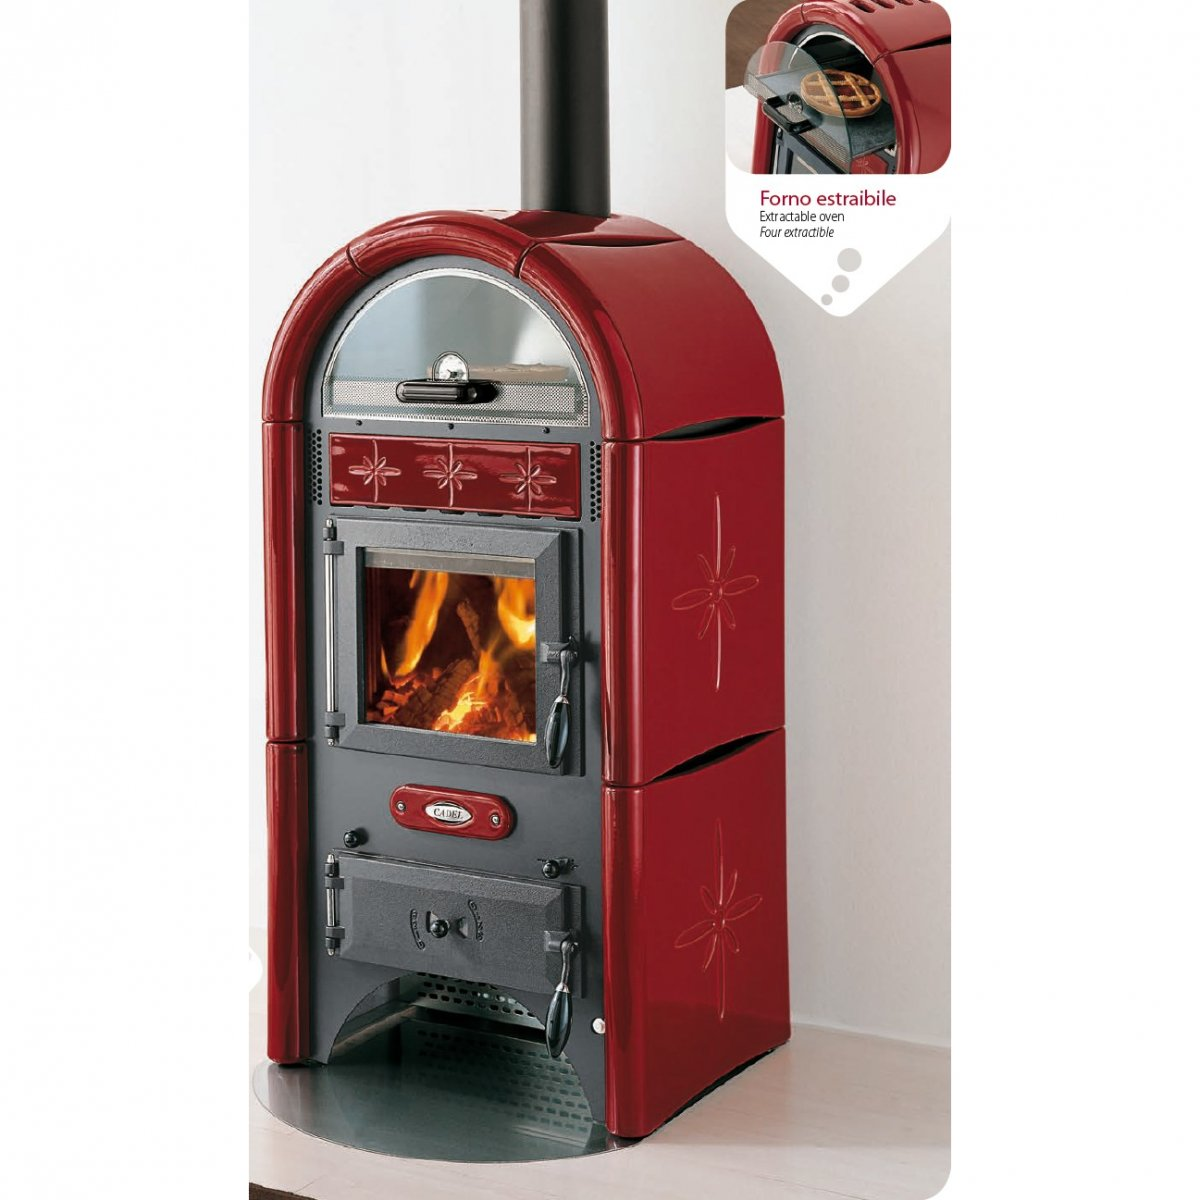 Wood stove model SUN - Cadel - Bonus tax 50%